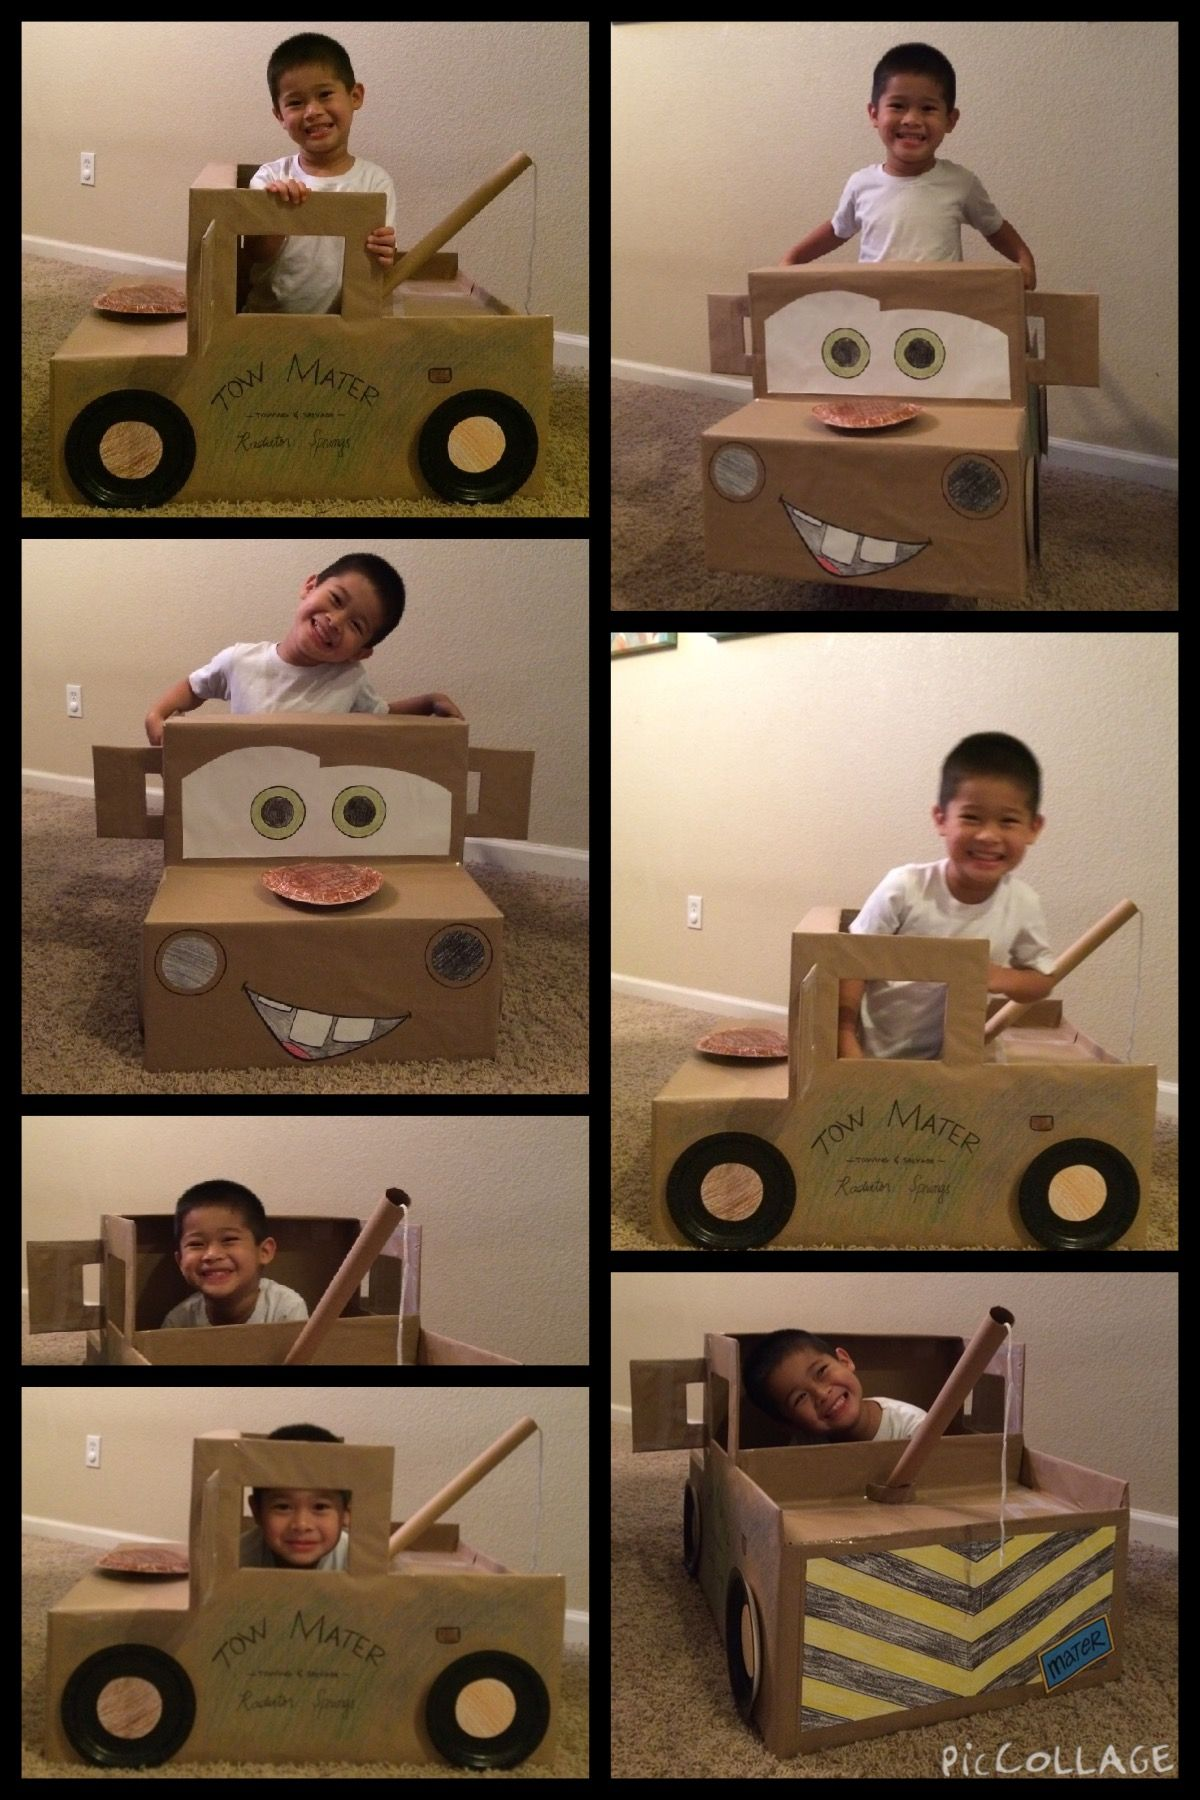 mater - cardboard car for the race                                                                                                                                                                                 More